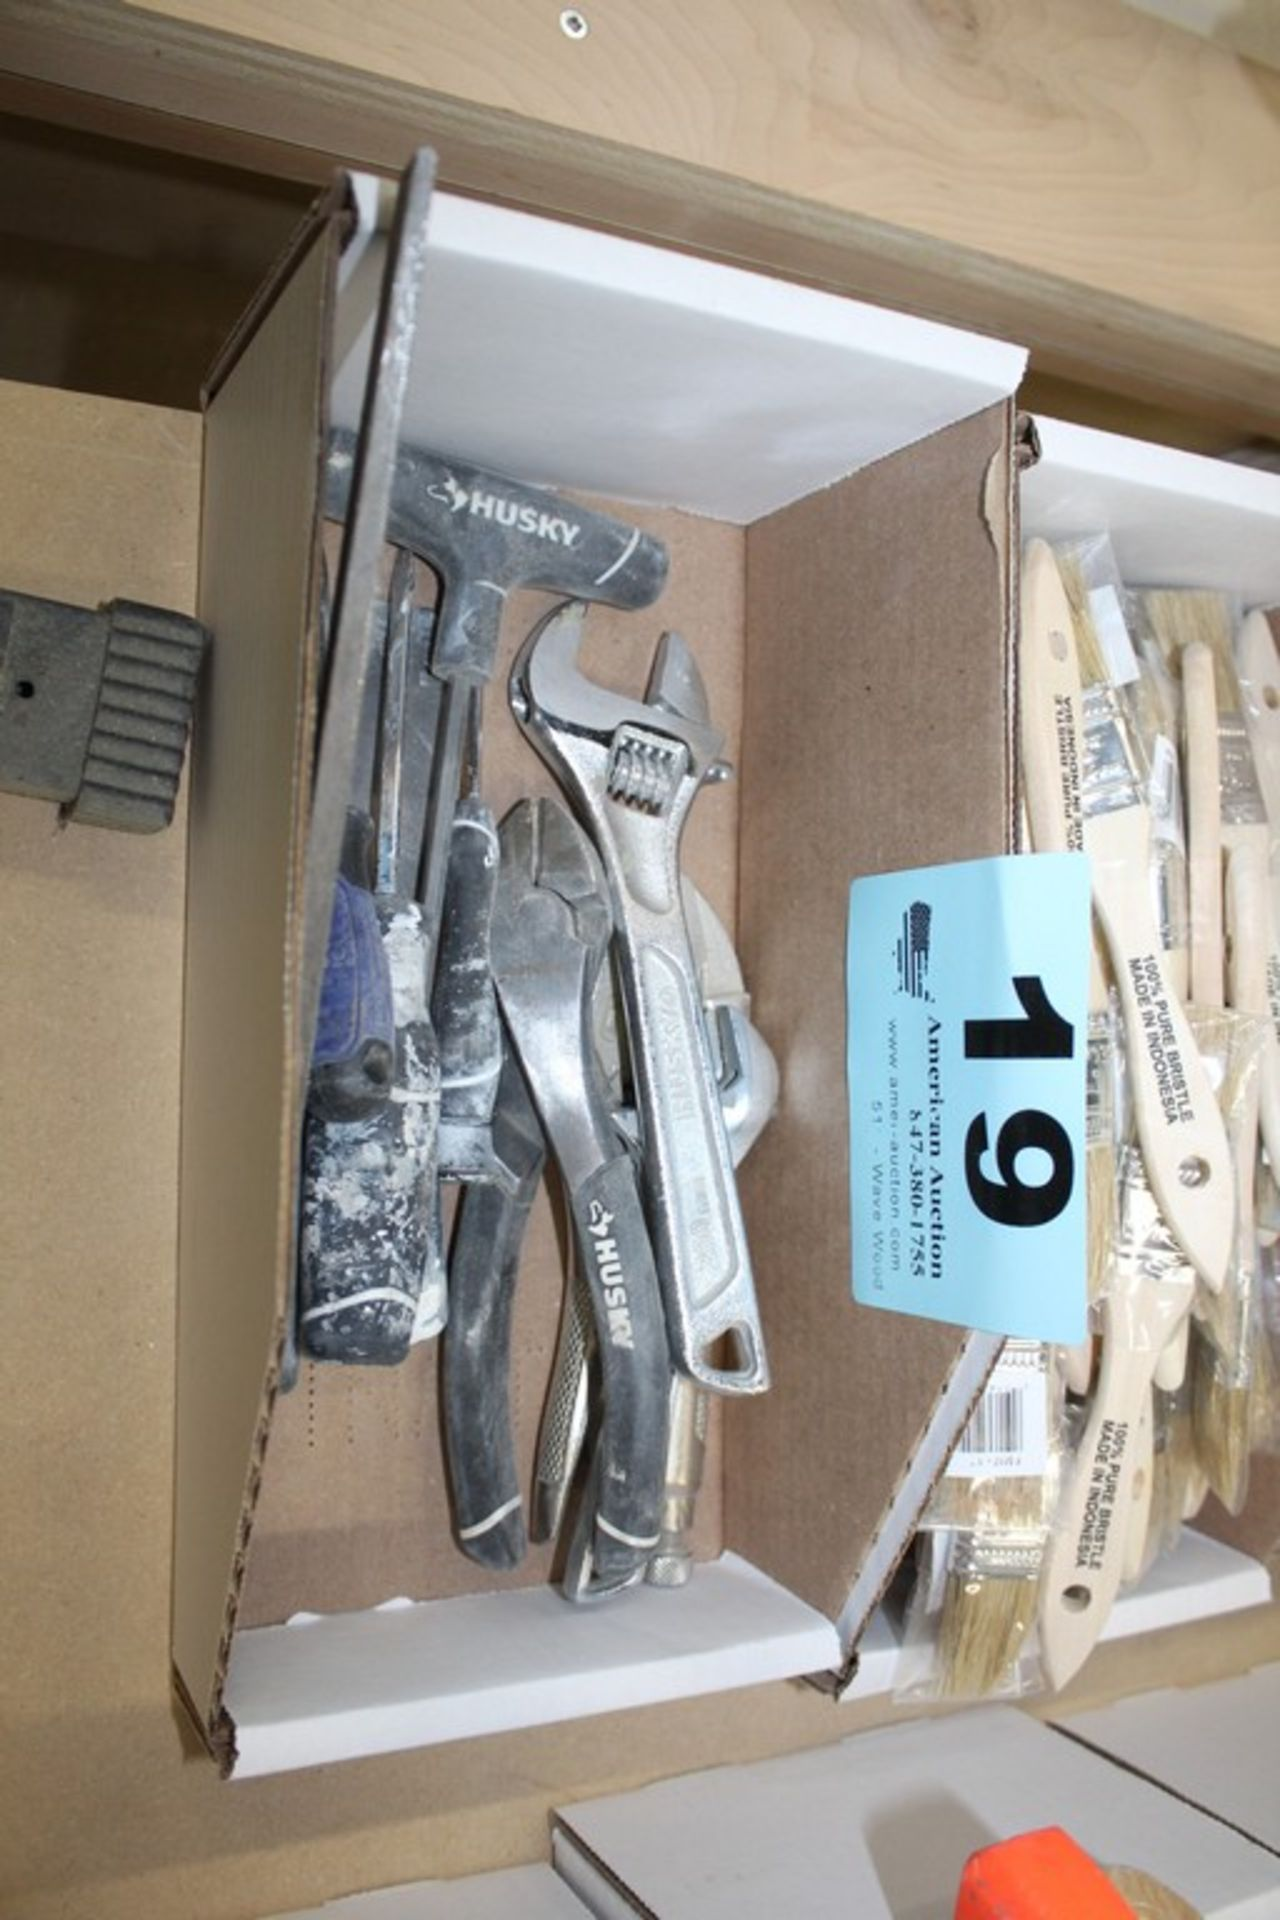 Lot 19 - ASSORTED TOOLS INCLUDING CRESCENT, WRENCH, PLIERS, SCREWDRIVERS, ETC.